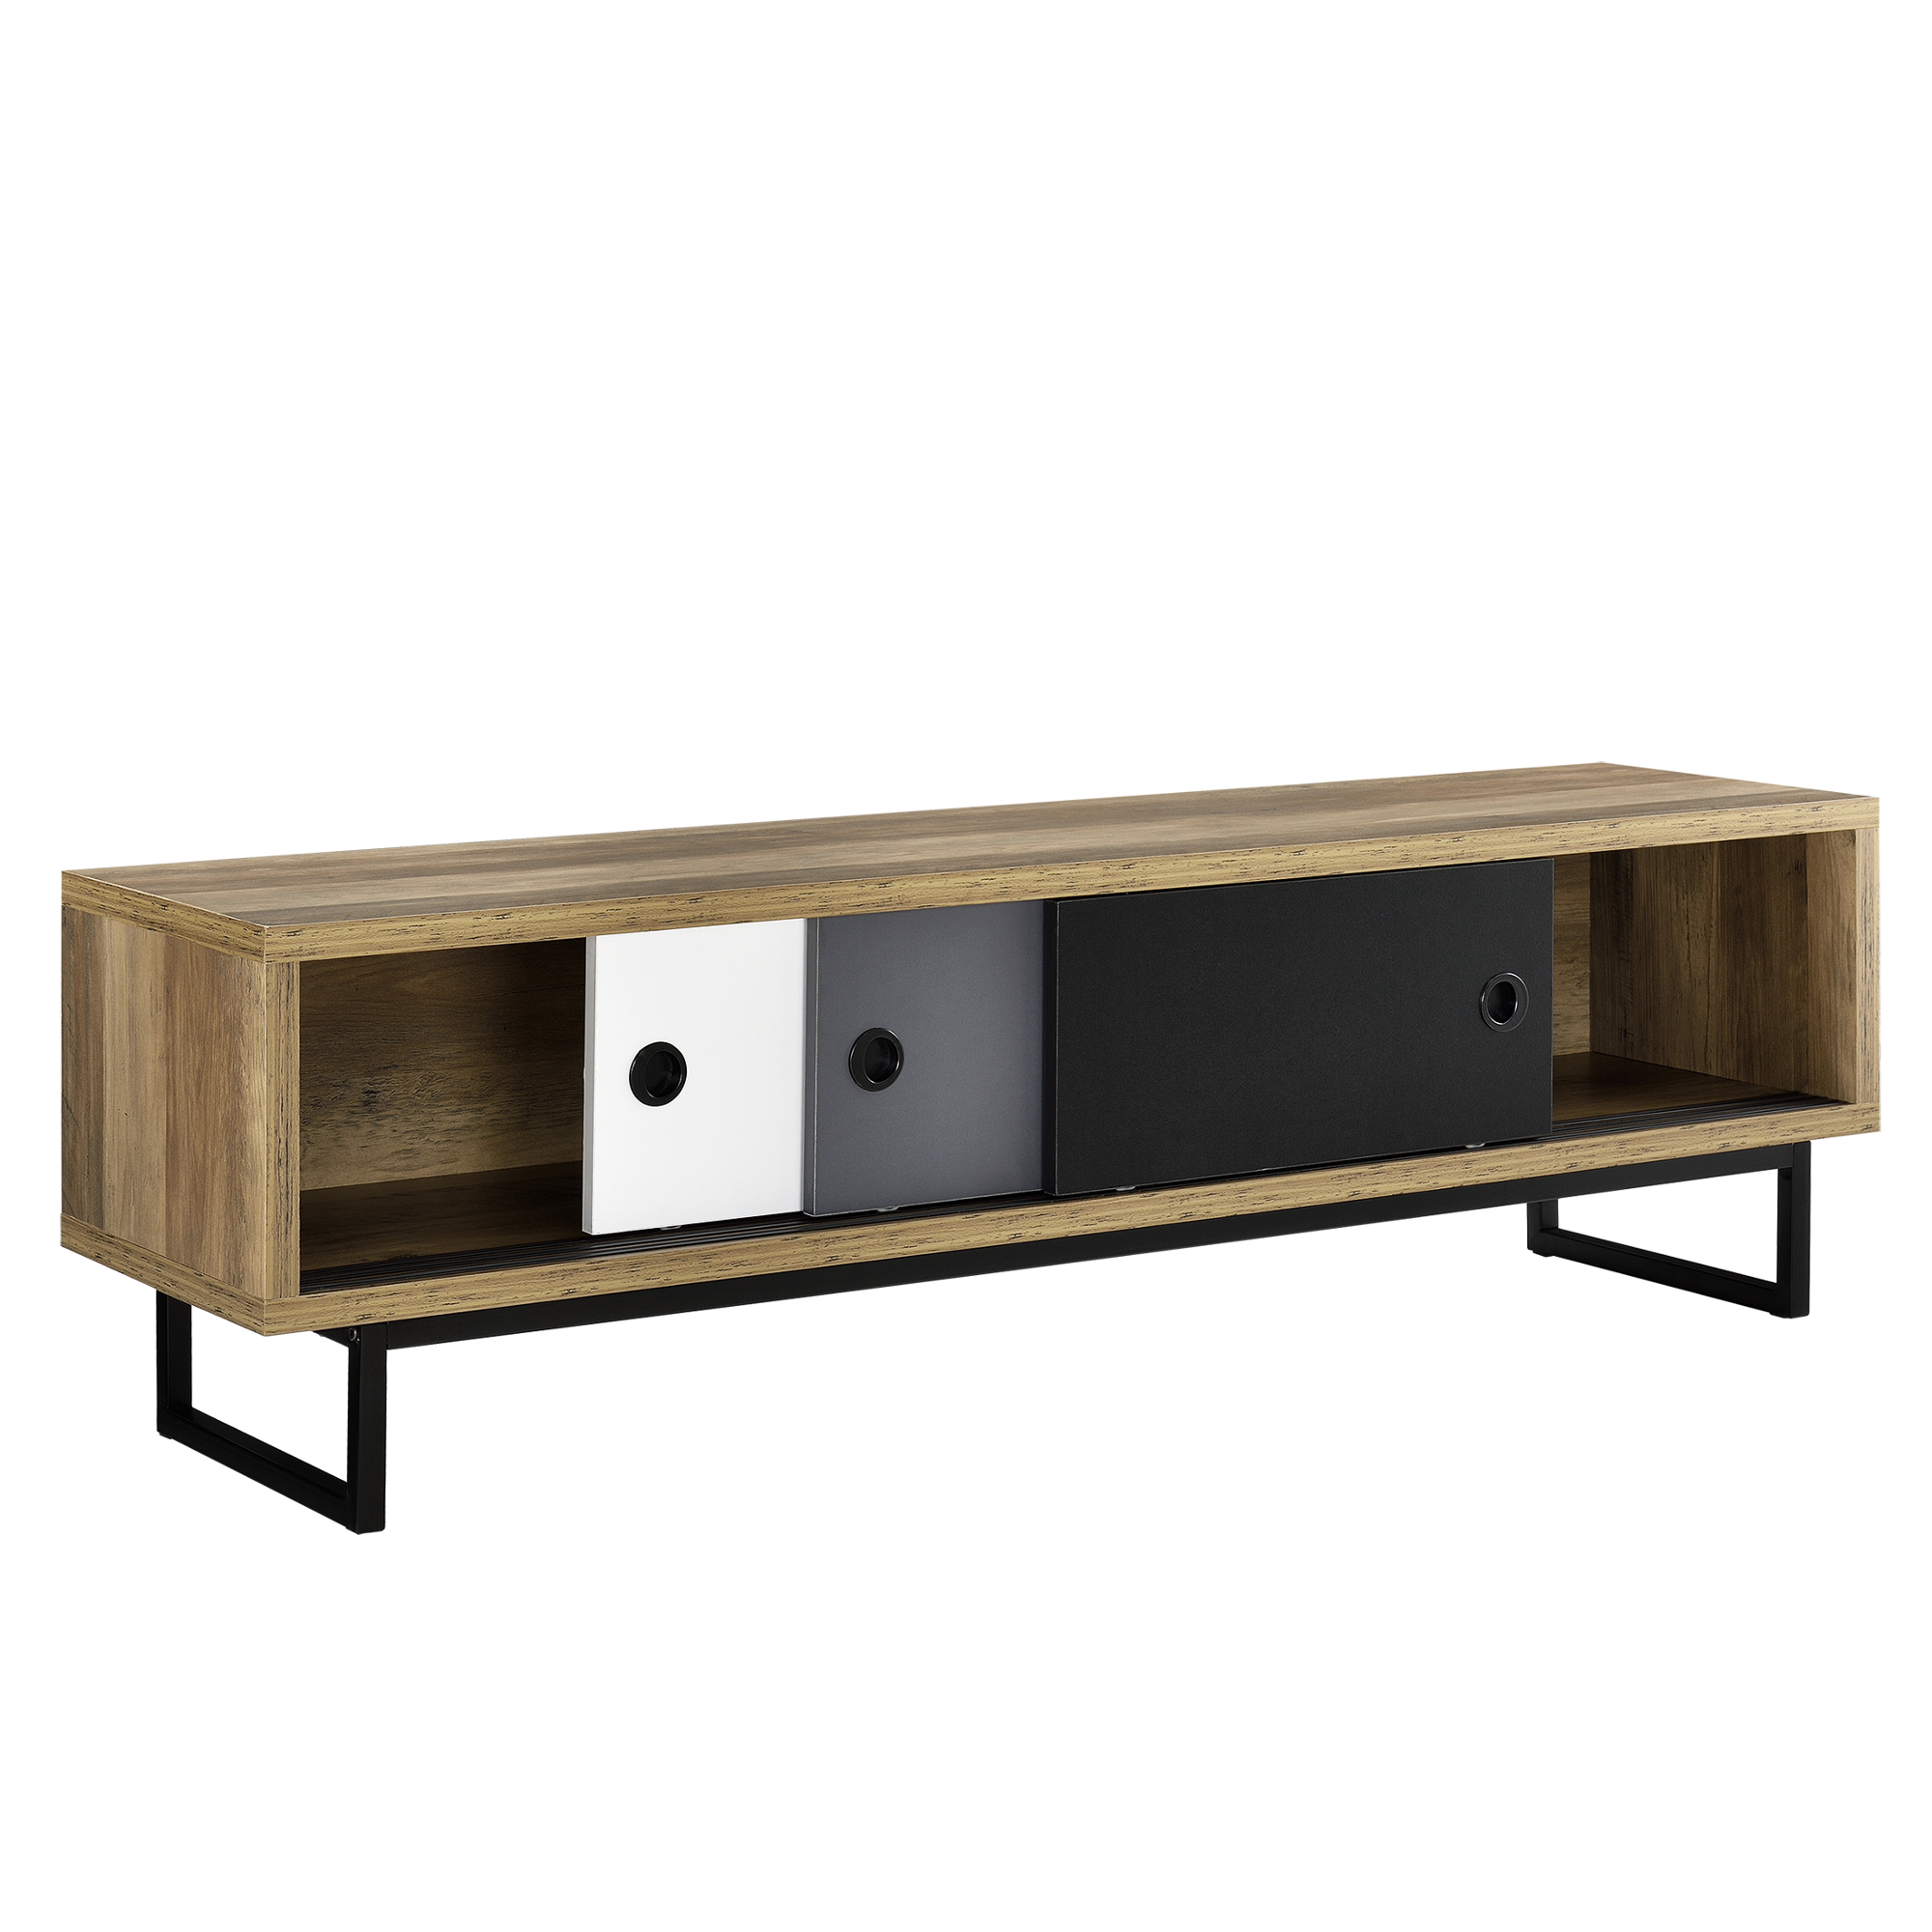 lowboard mit schiebet ren fernsehtisch kommode tv schrank sideboard ebay. Black Bedroom Furniture Sets. Home Design Ideas